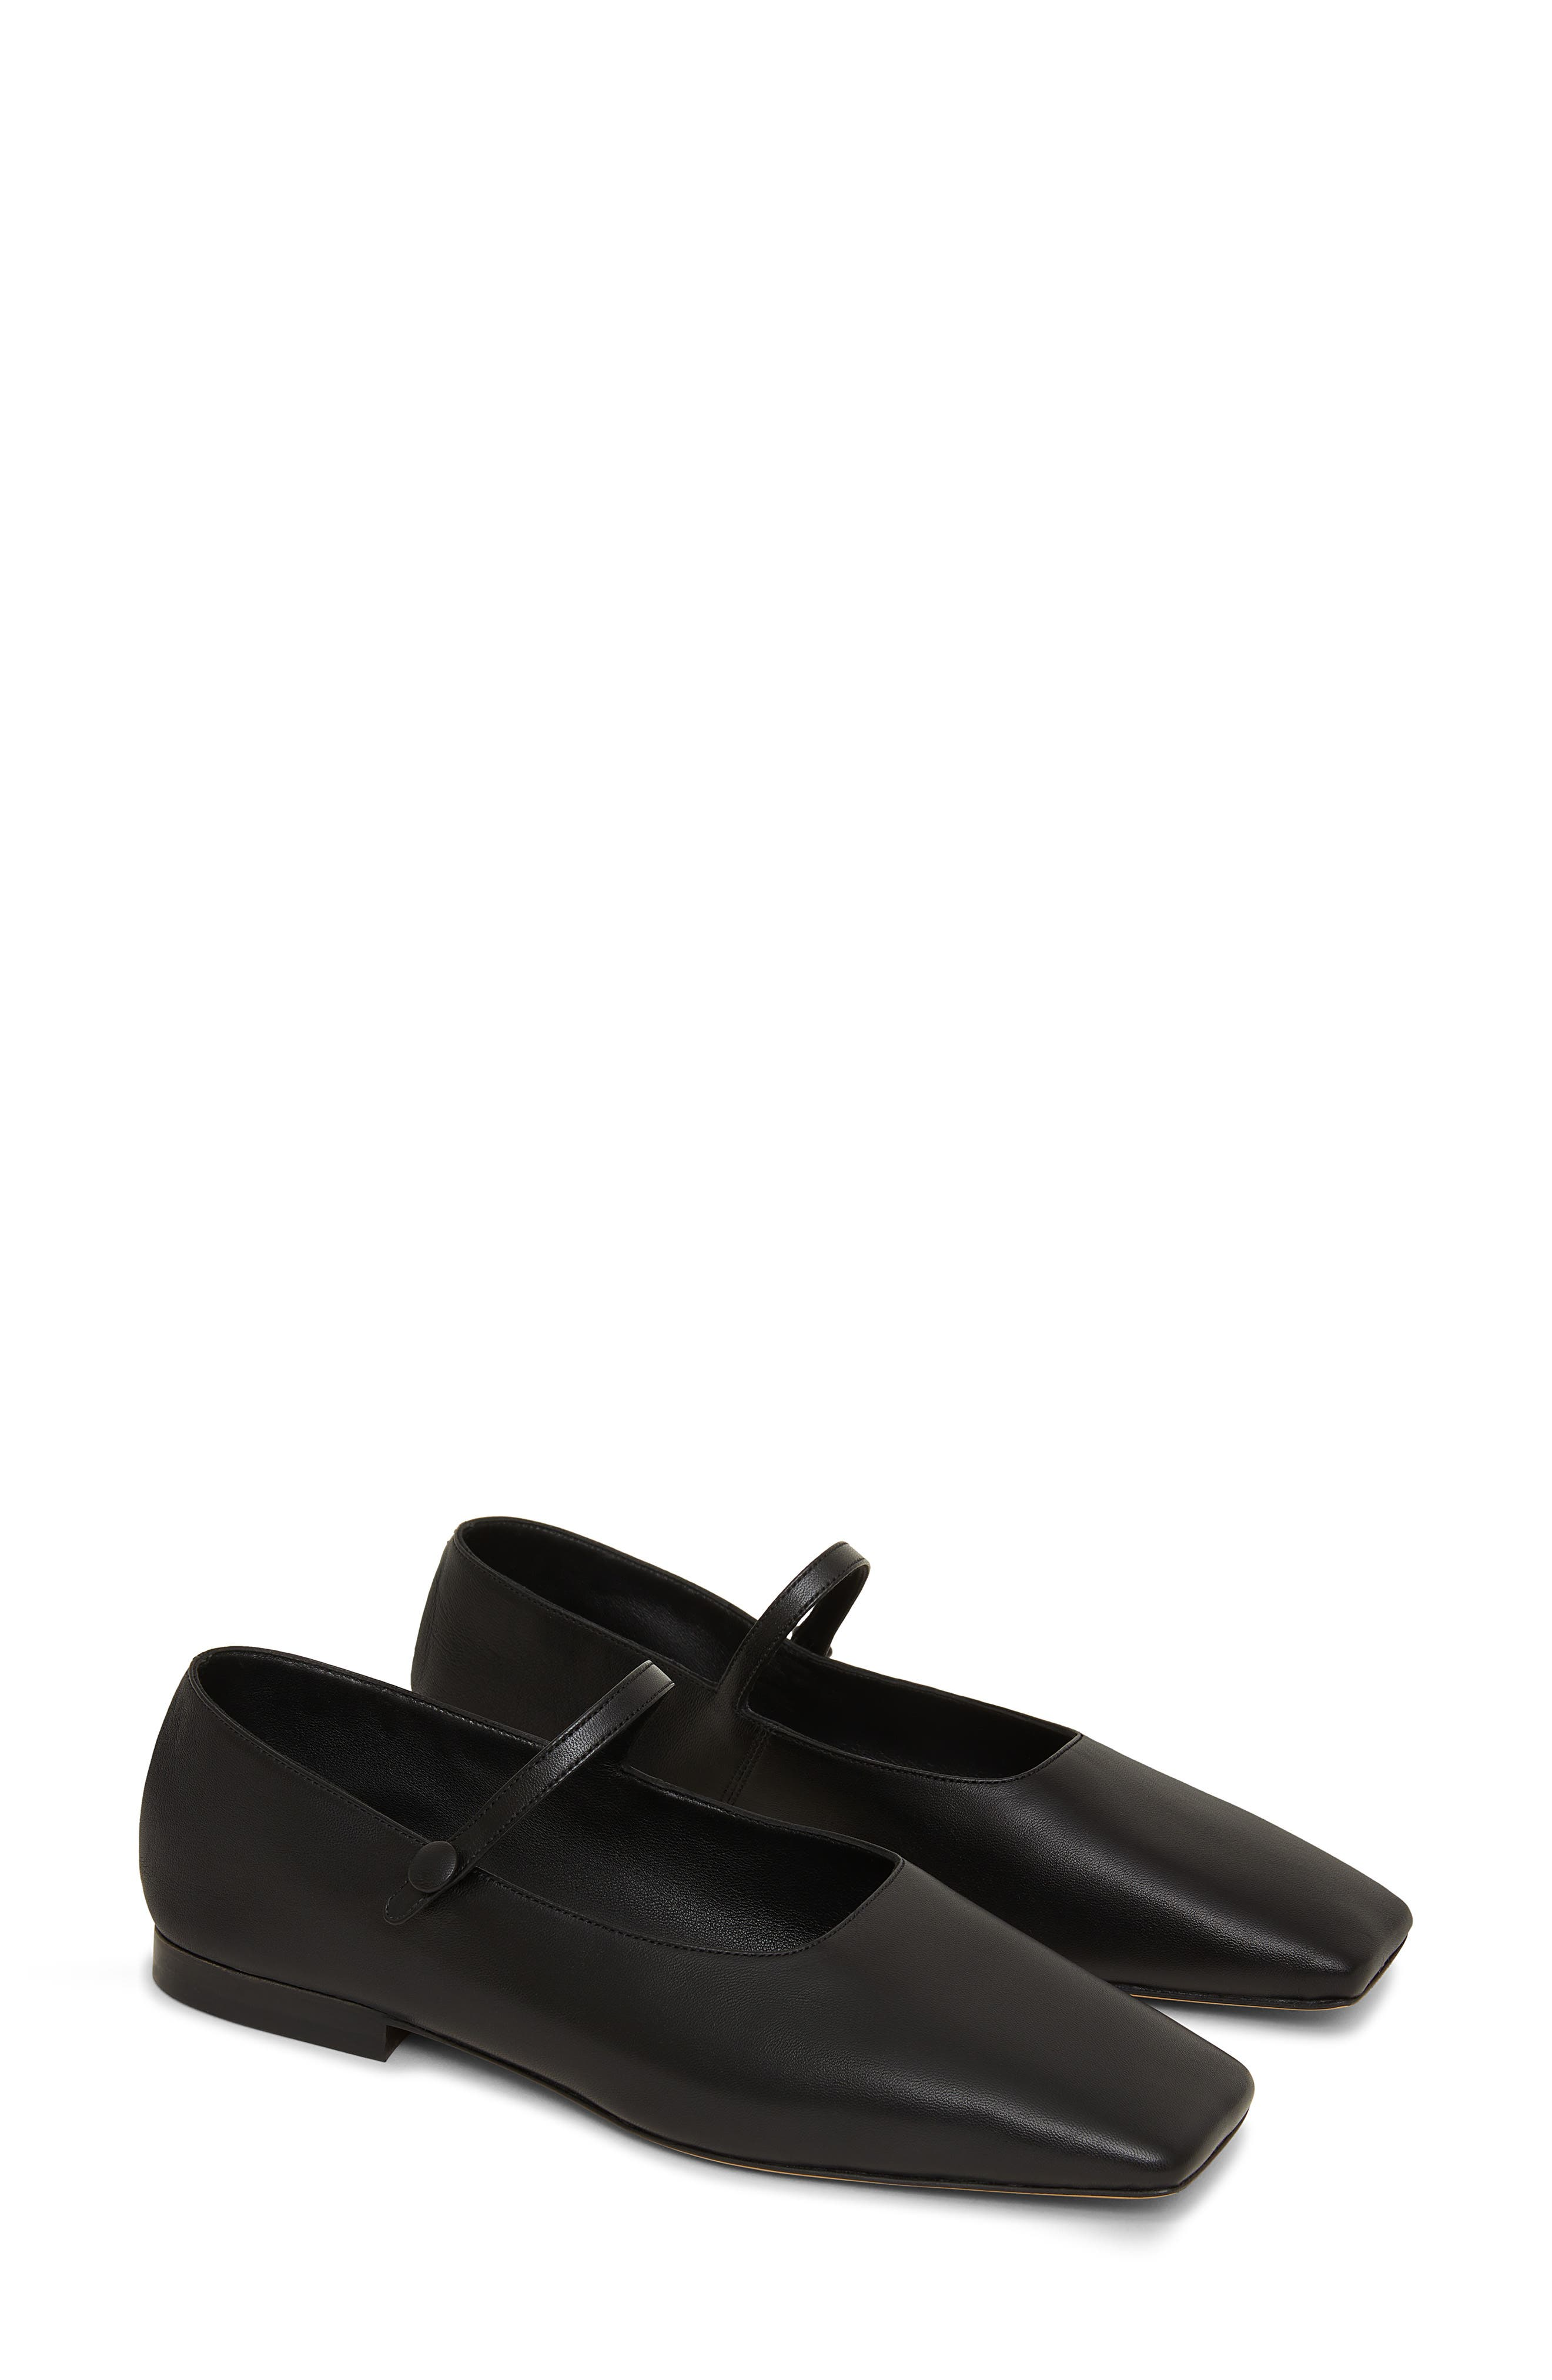 History of Victorian Boots & Shoes for Women Mansur Gavriel Square Toe Mary Jane Size 6Us in Black at Nordstrom $395.00 AT vintagedancer.com